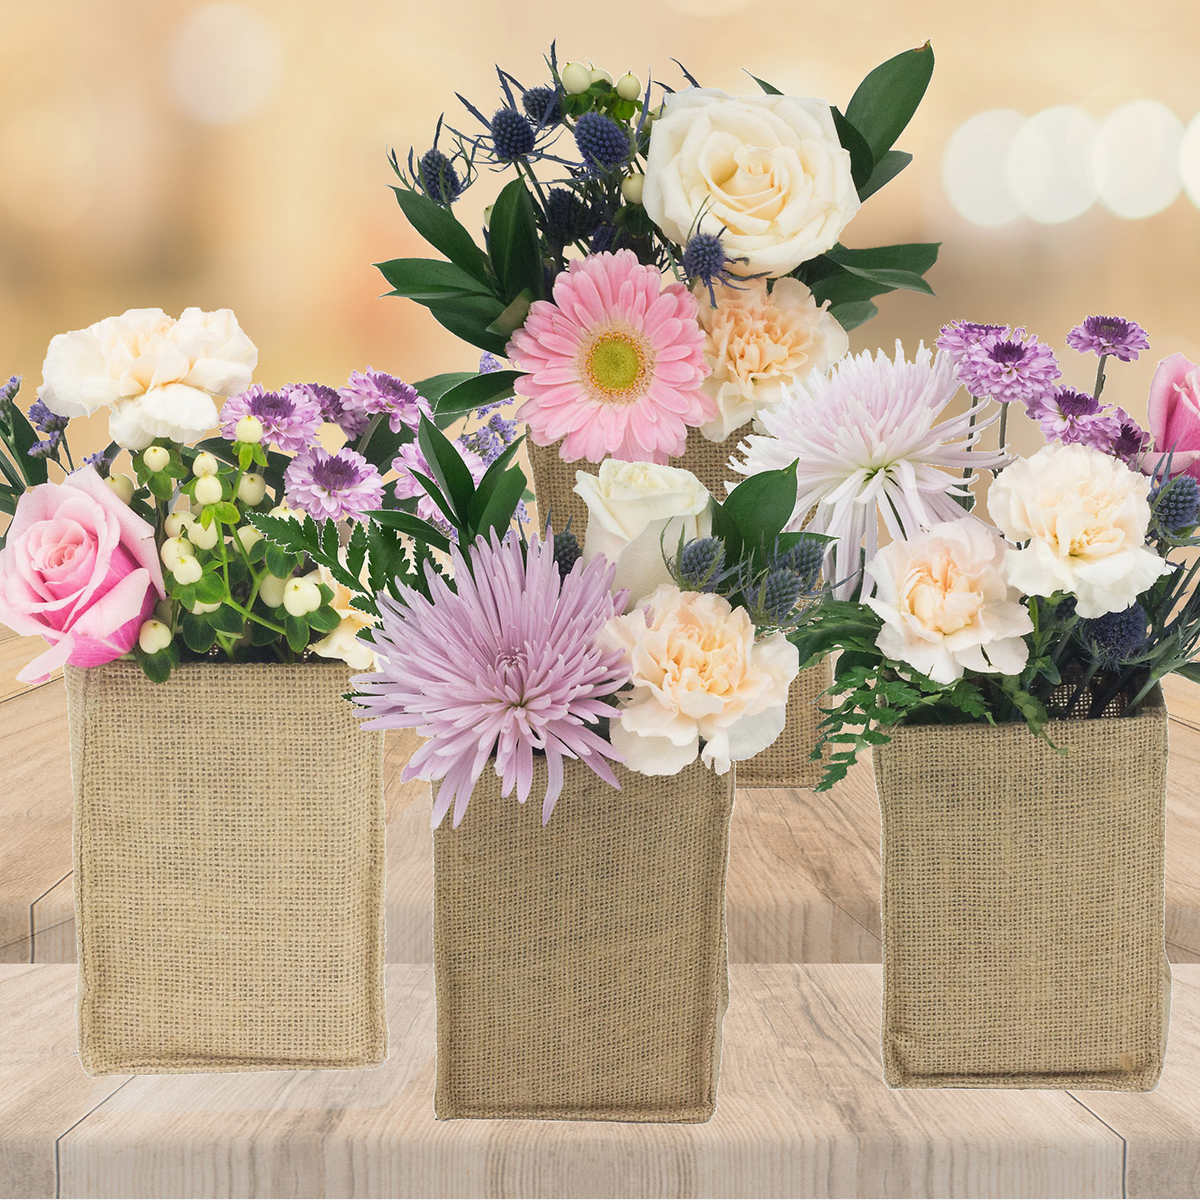 Euro mini bouquets 20 pack similar products izmirmasajfo Images